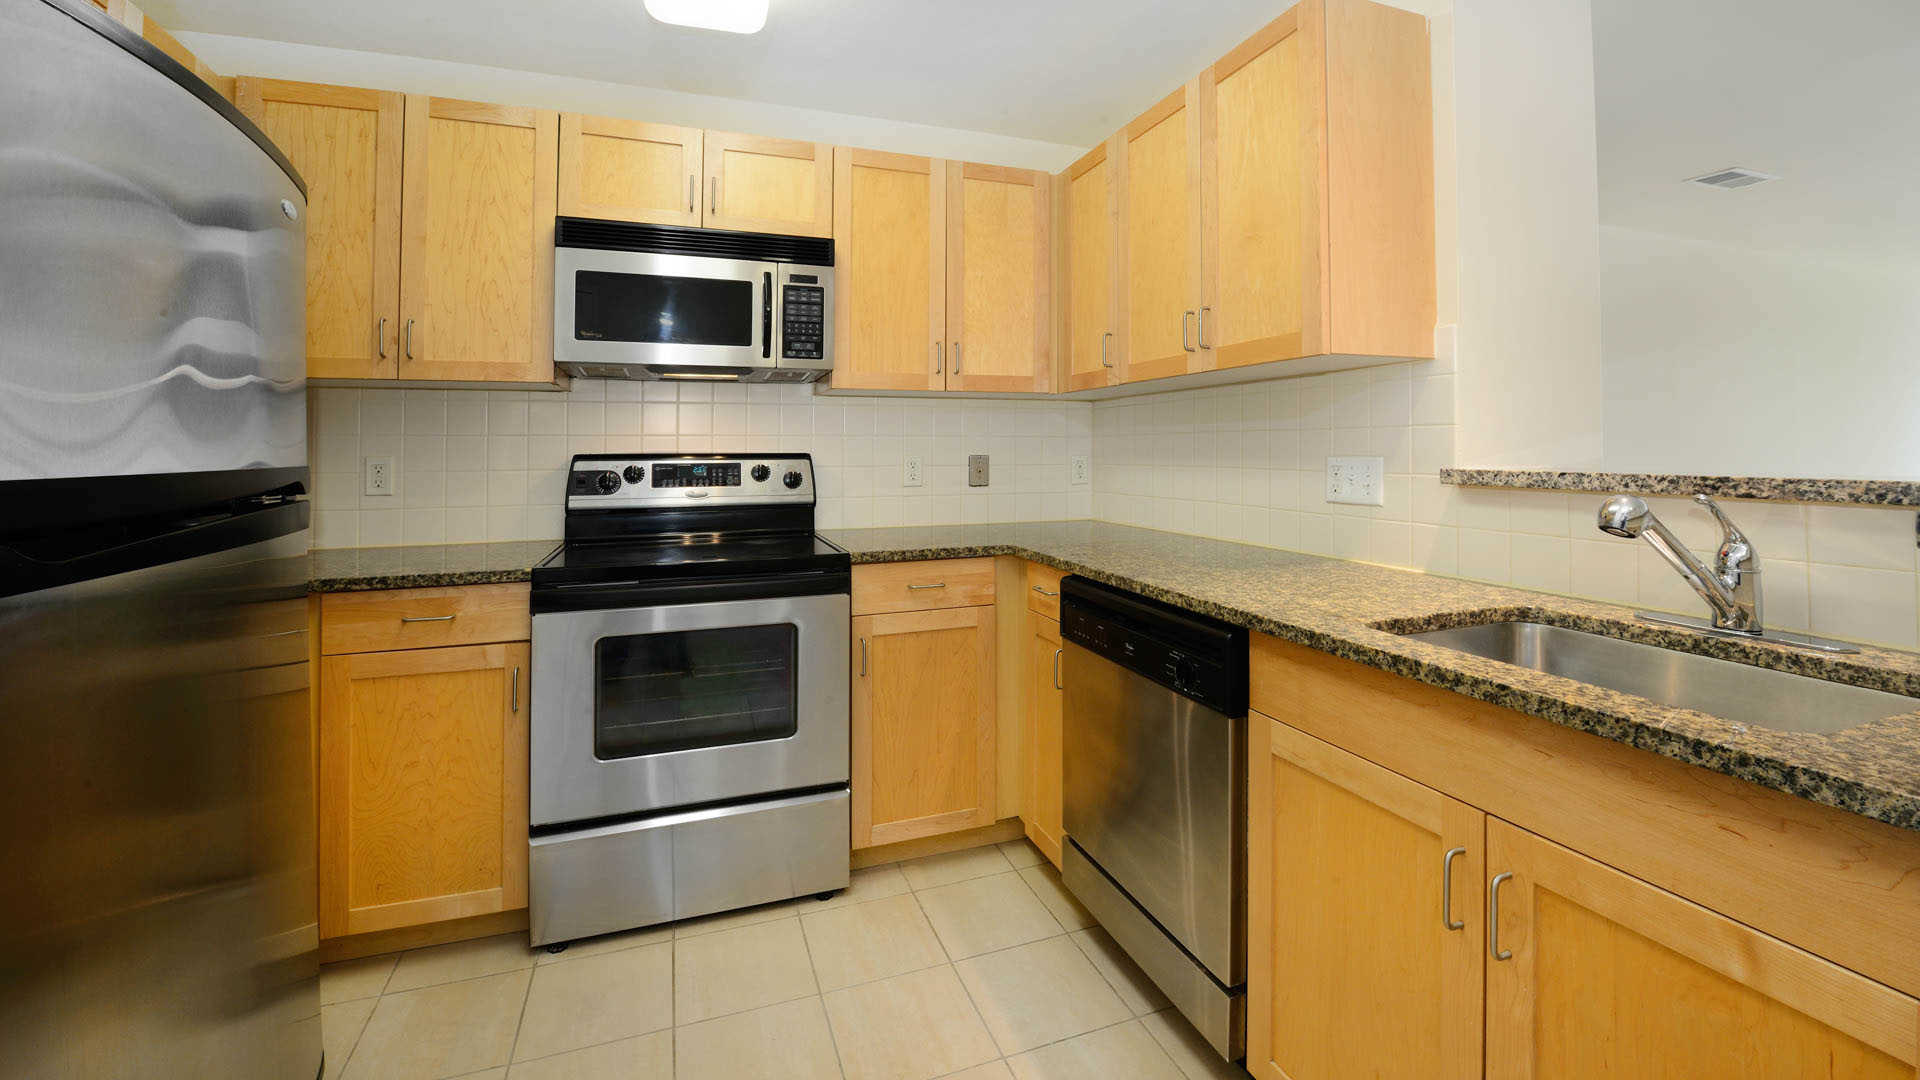 The pier apartments kitchen